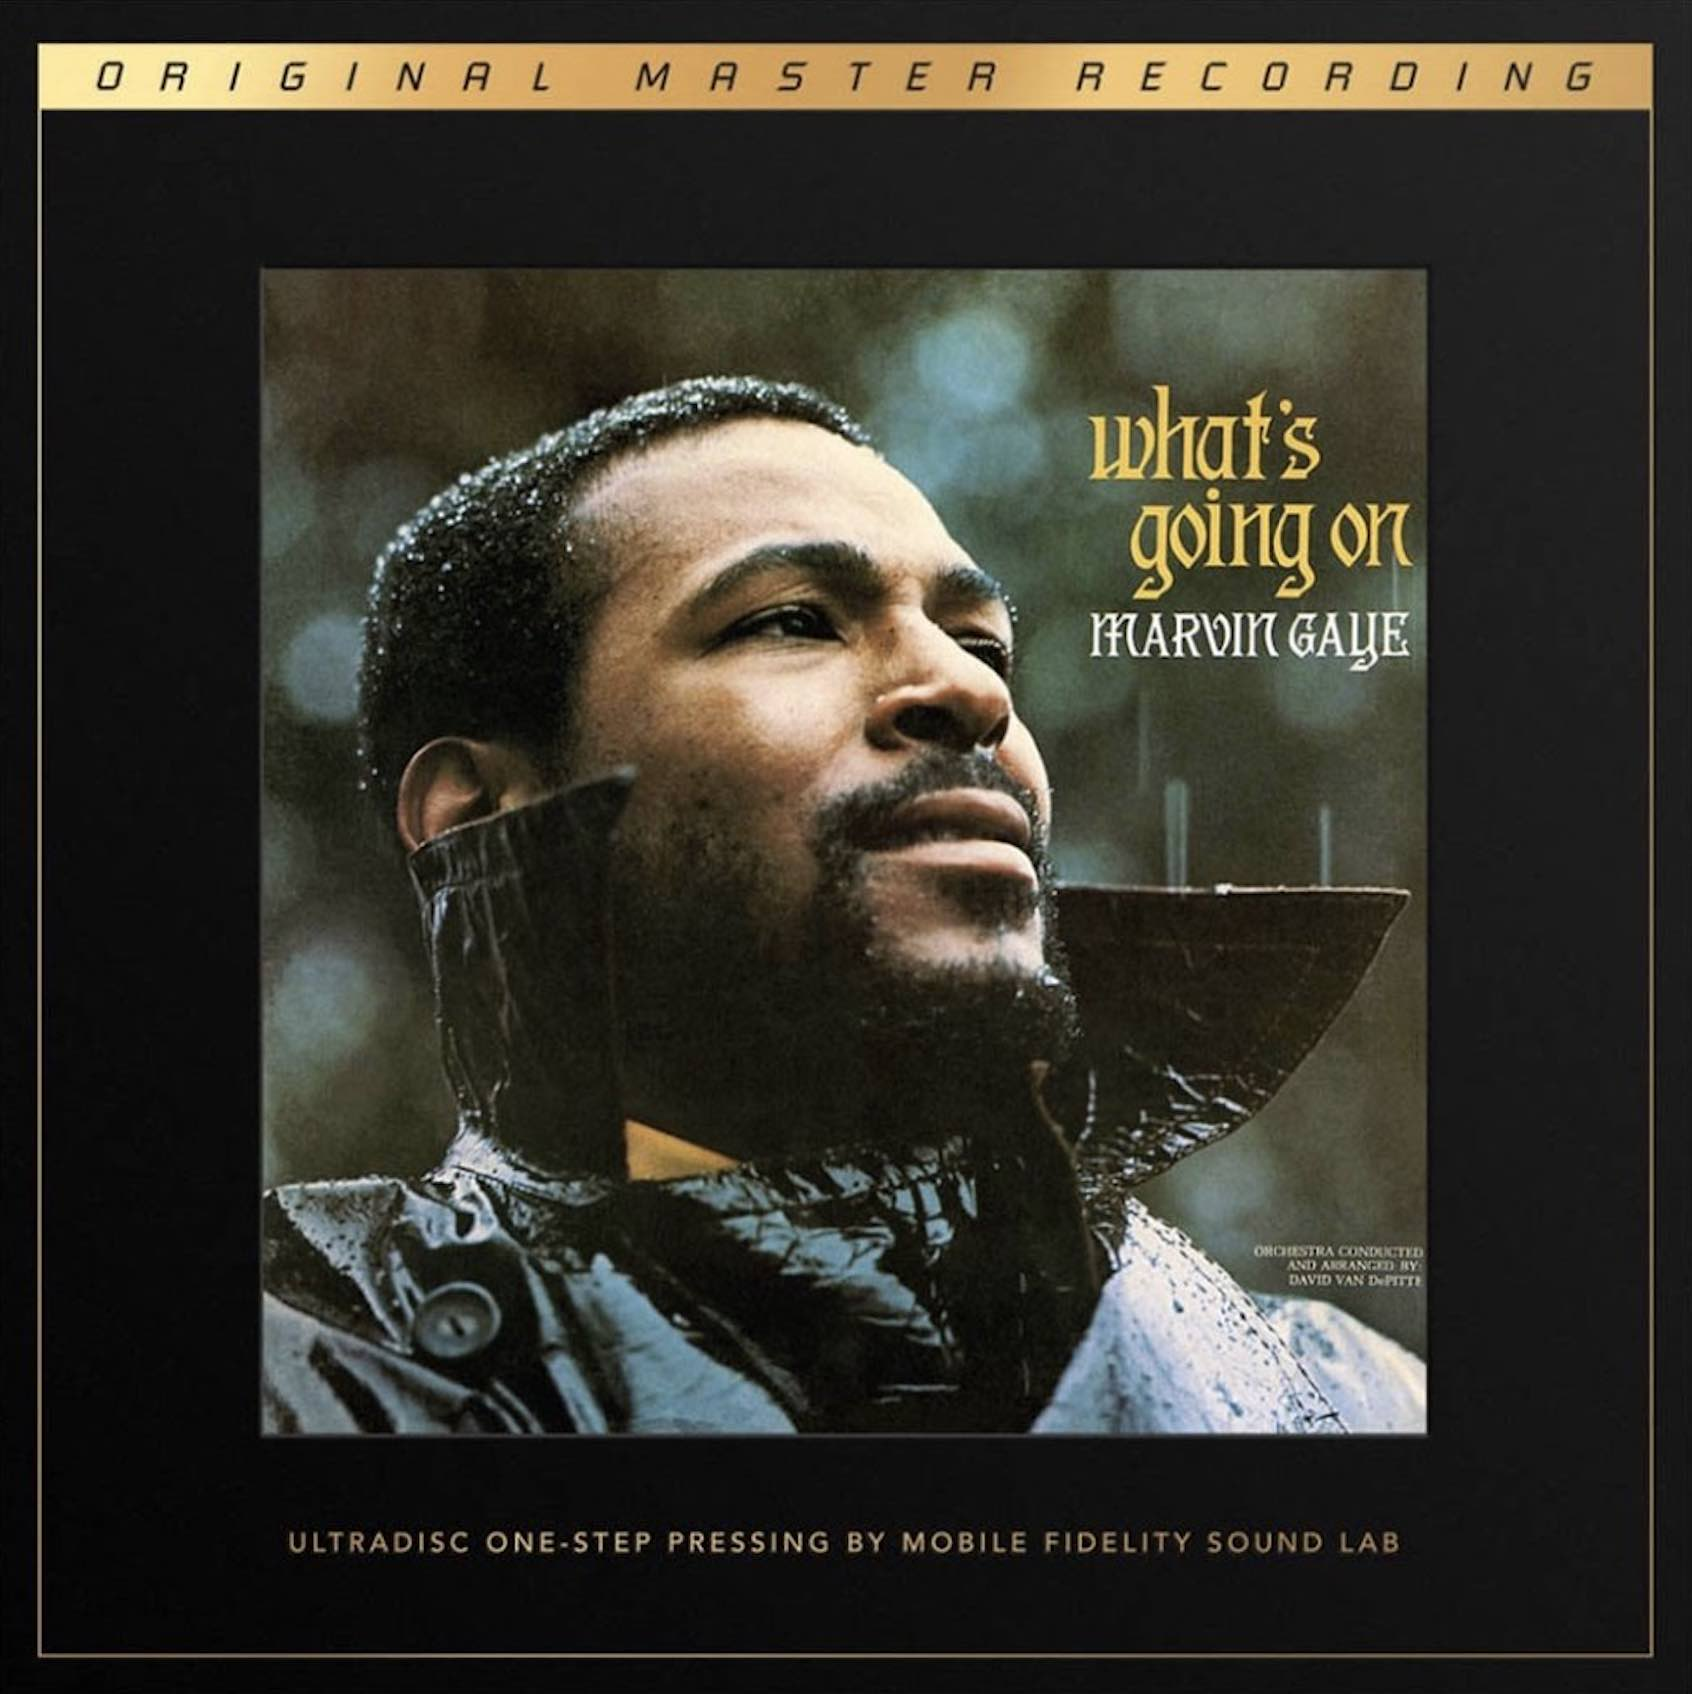 Marvin Gaye - What's Going On [ULTRADISC ONE-STEP LP]